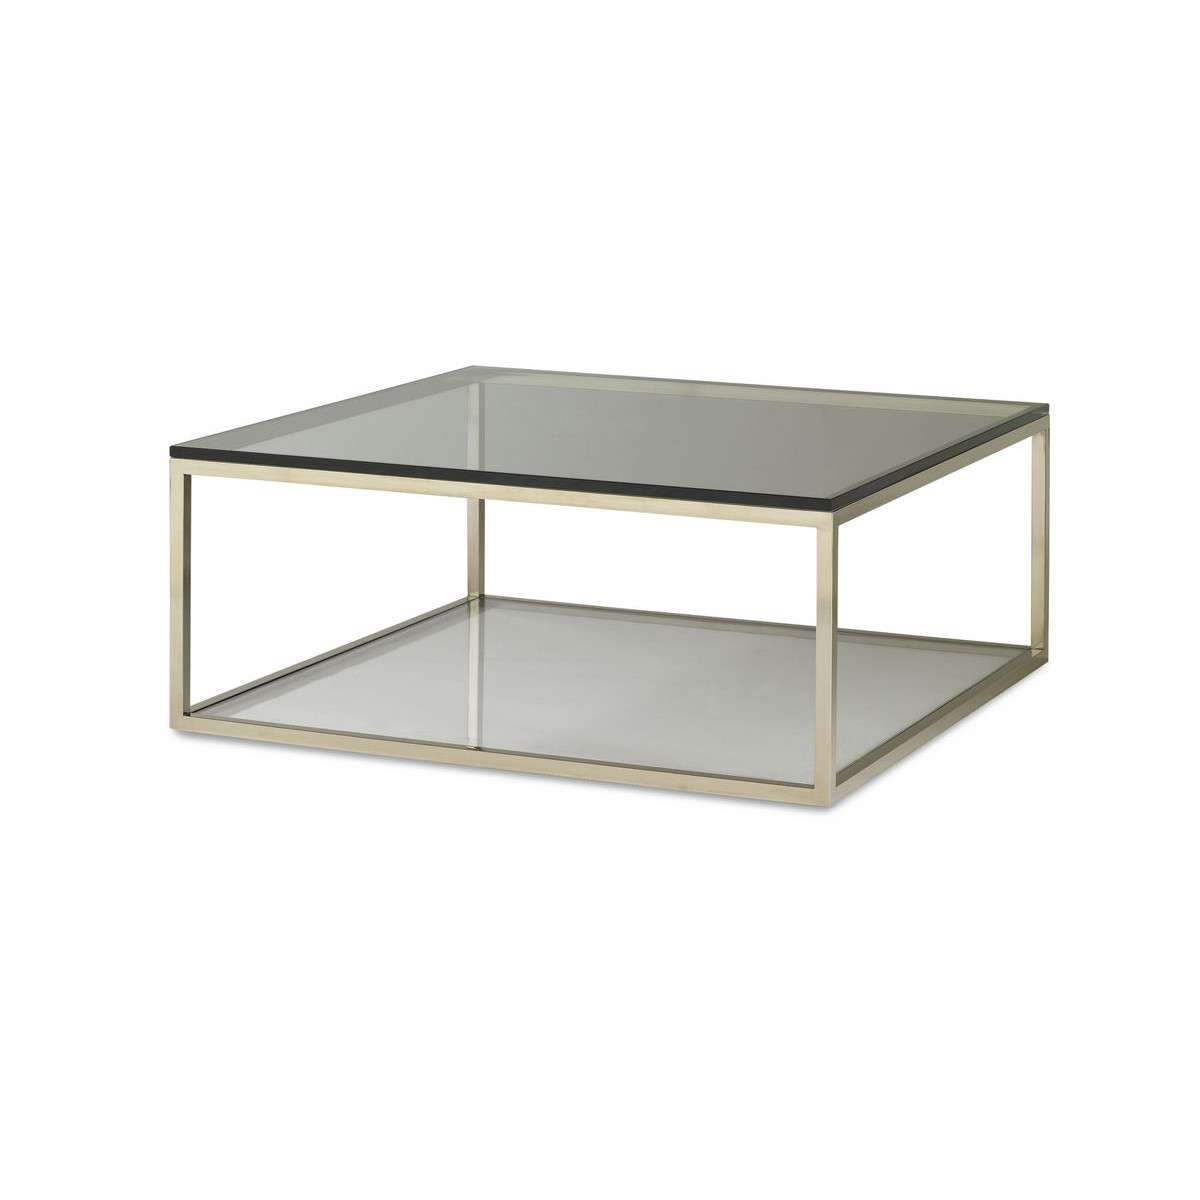 Aleksil With Latest Glass Square Coffee Tables (View 12 of 20)